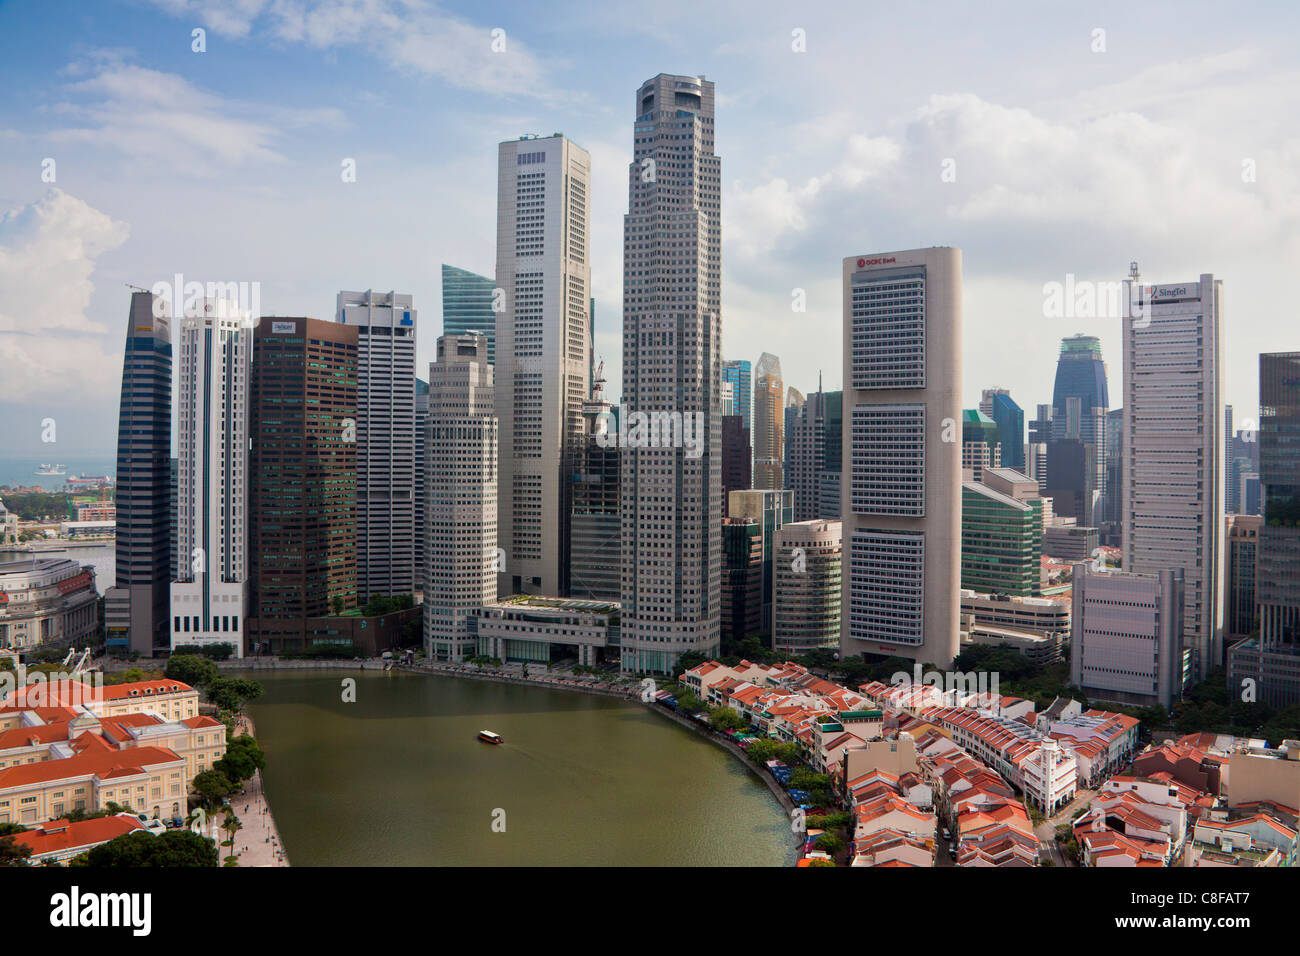 Singapore, Asia, district, Raffles Square, Skyline, blocks of flats, high-rise buildings, houses, homes, contrast, - Stock Image